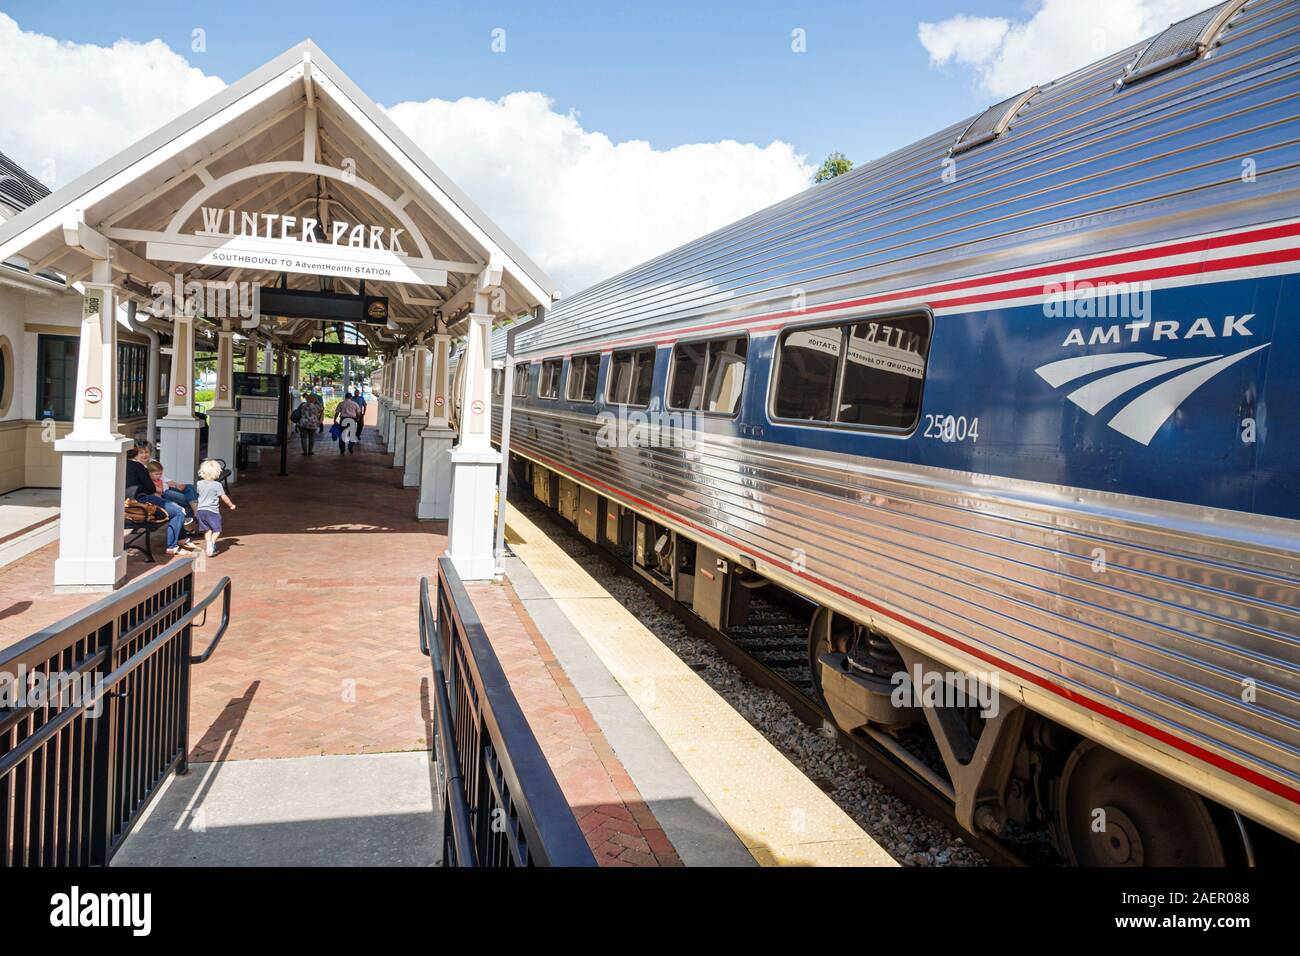 orlando train station high resolution stock photography and images alamy https www alamy com florida orlando winter park amtraksunrail amtrak sunrail station train railway station depot platform track image336107304 html